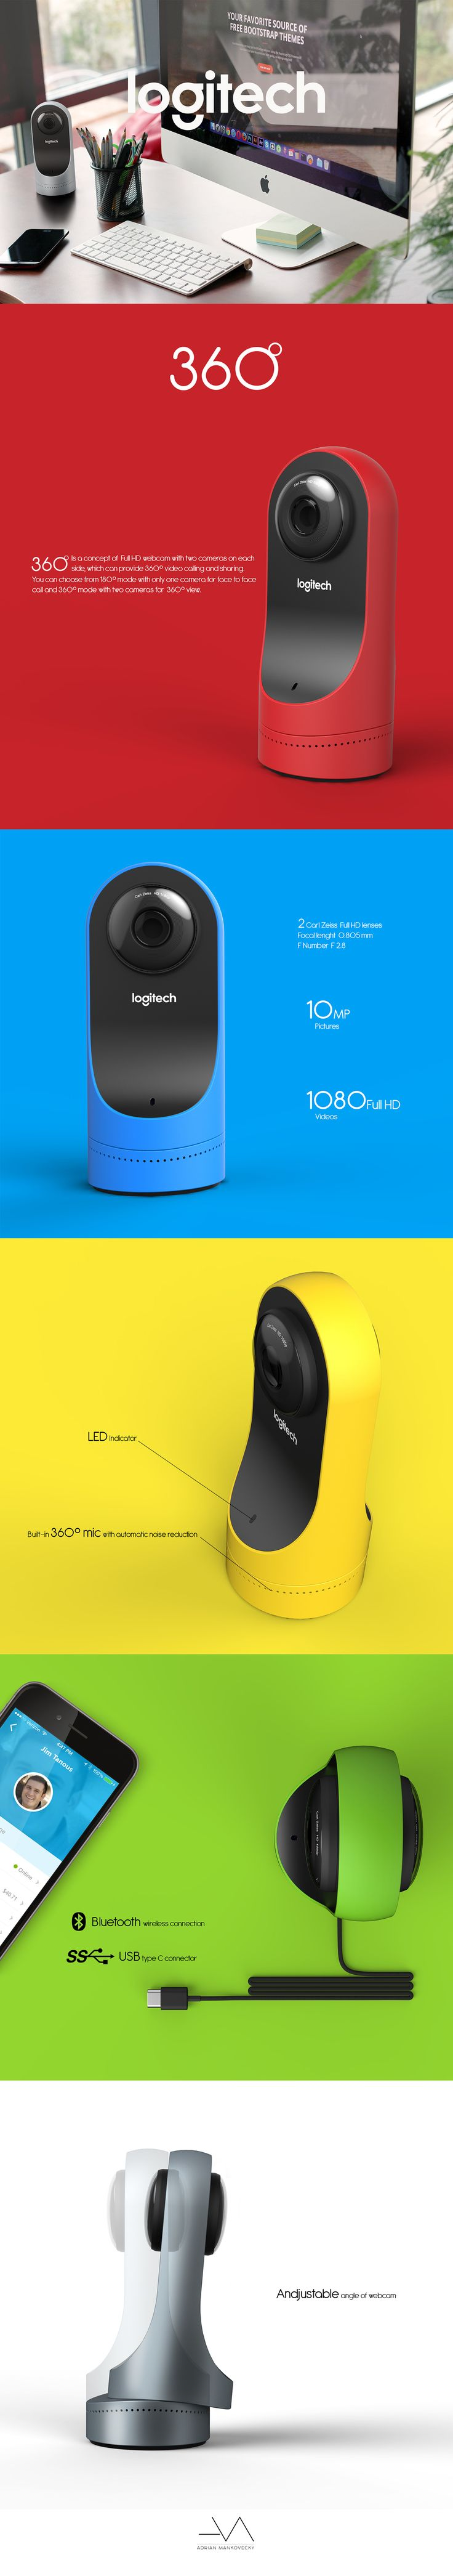 360° is a concept of 360° Full HD webcam